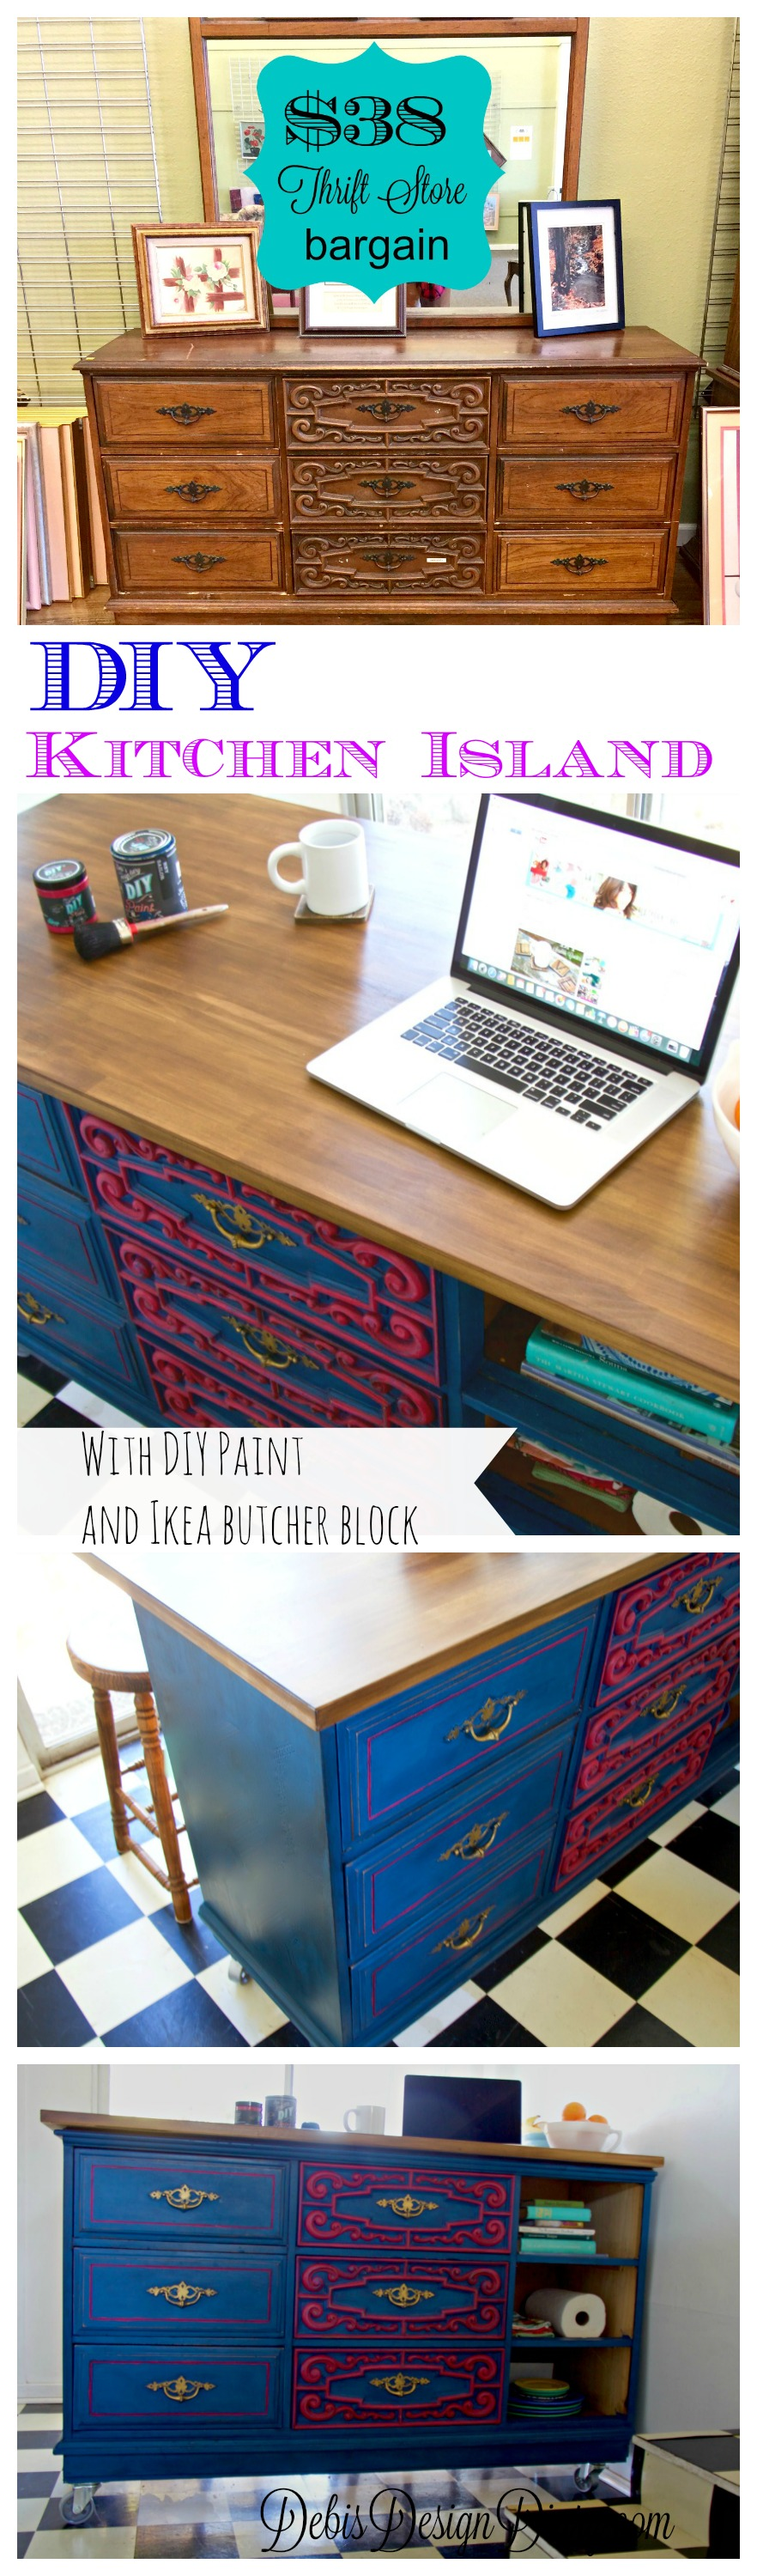 Building A Kitchen Island From Junk Debis Design Diary